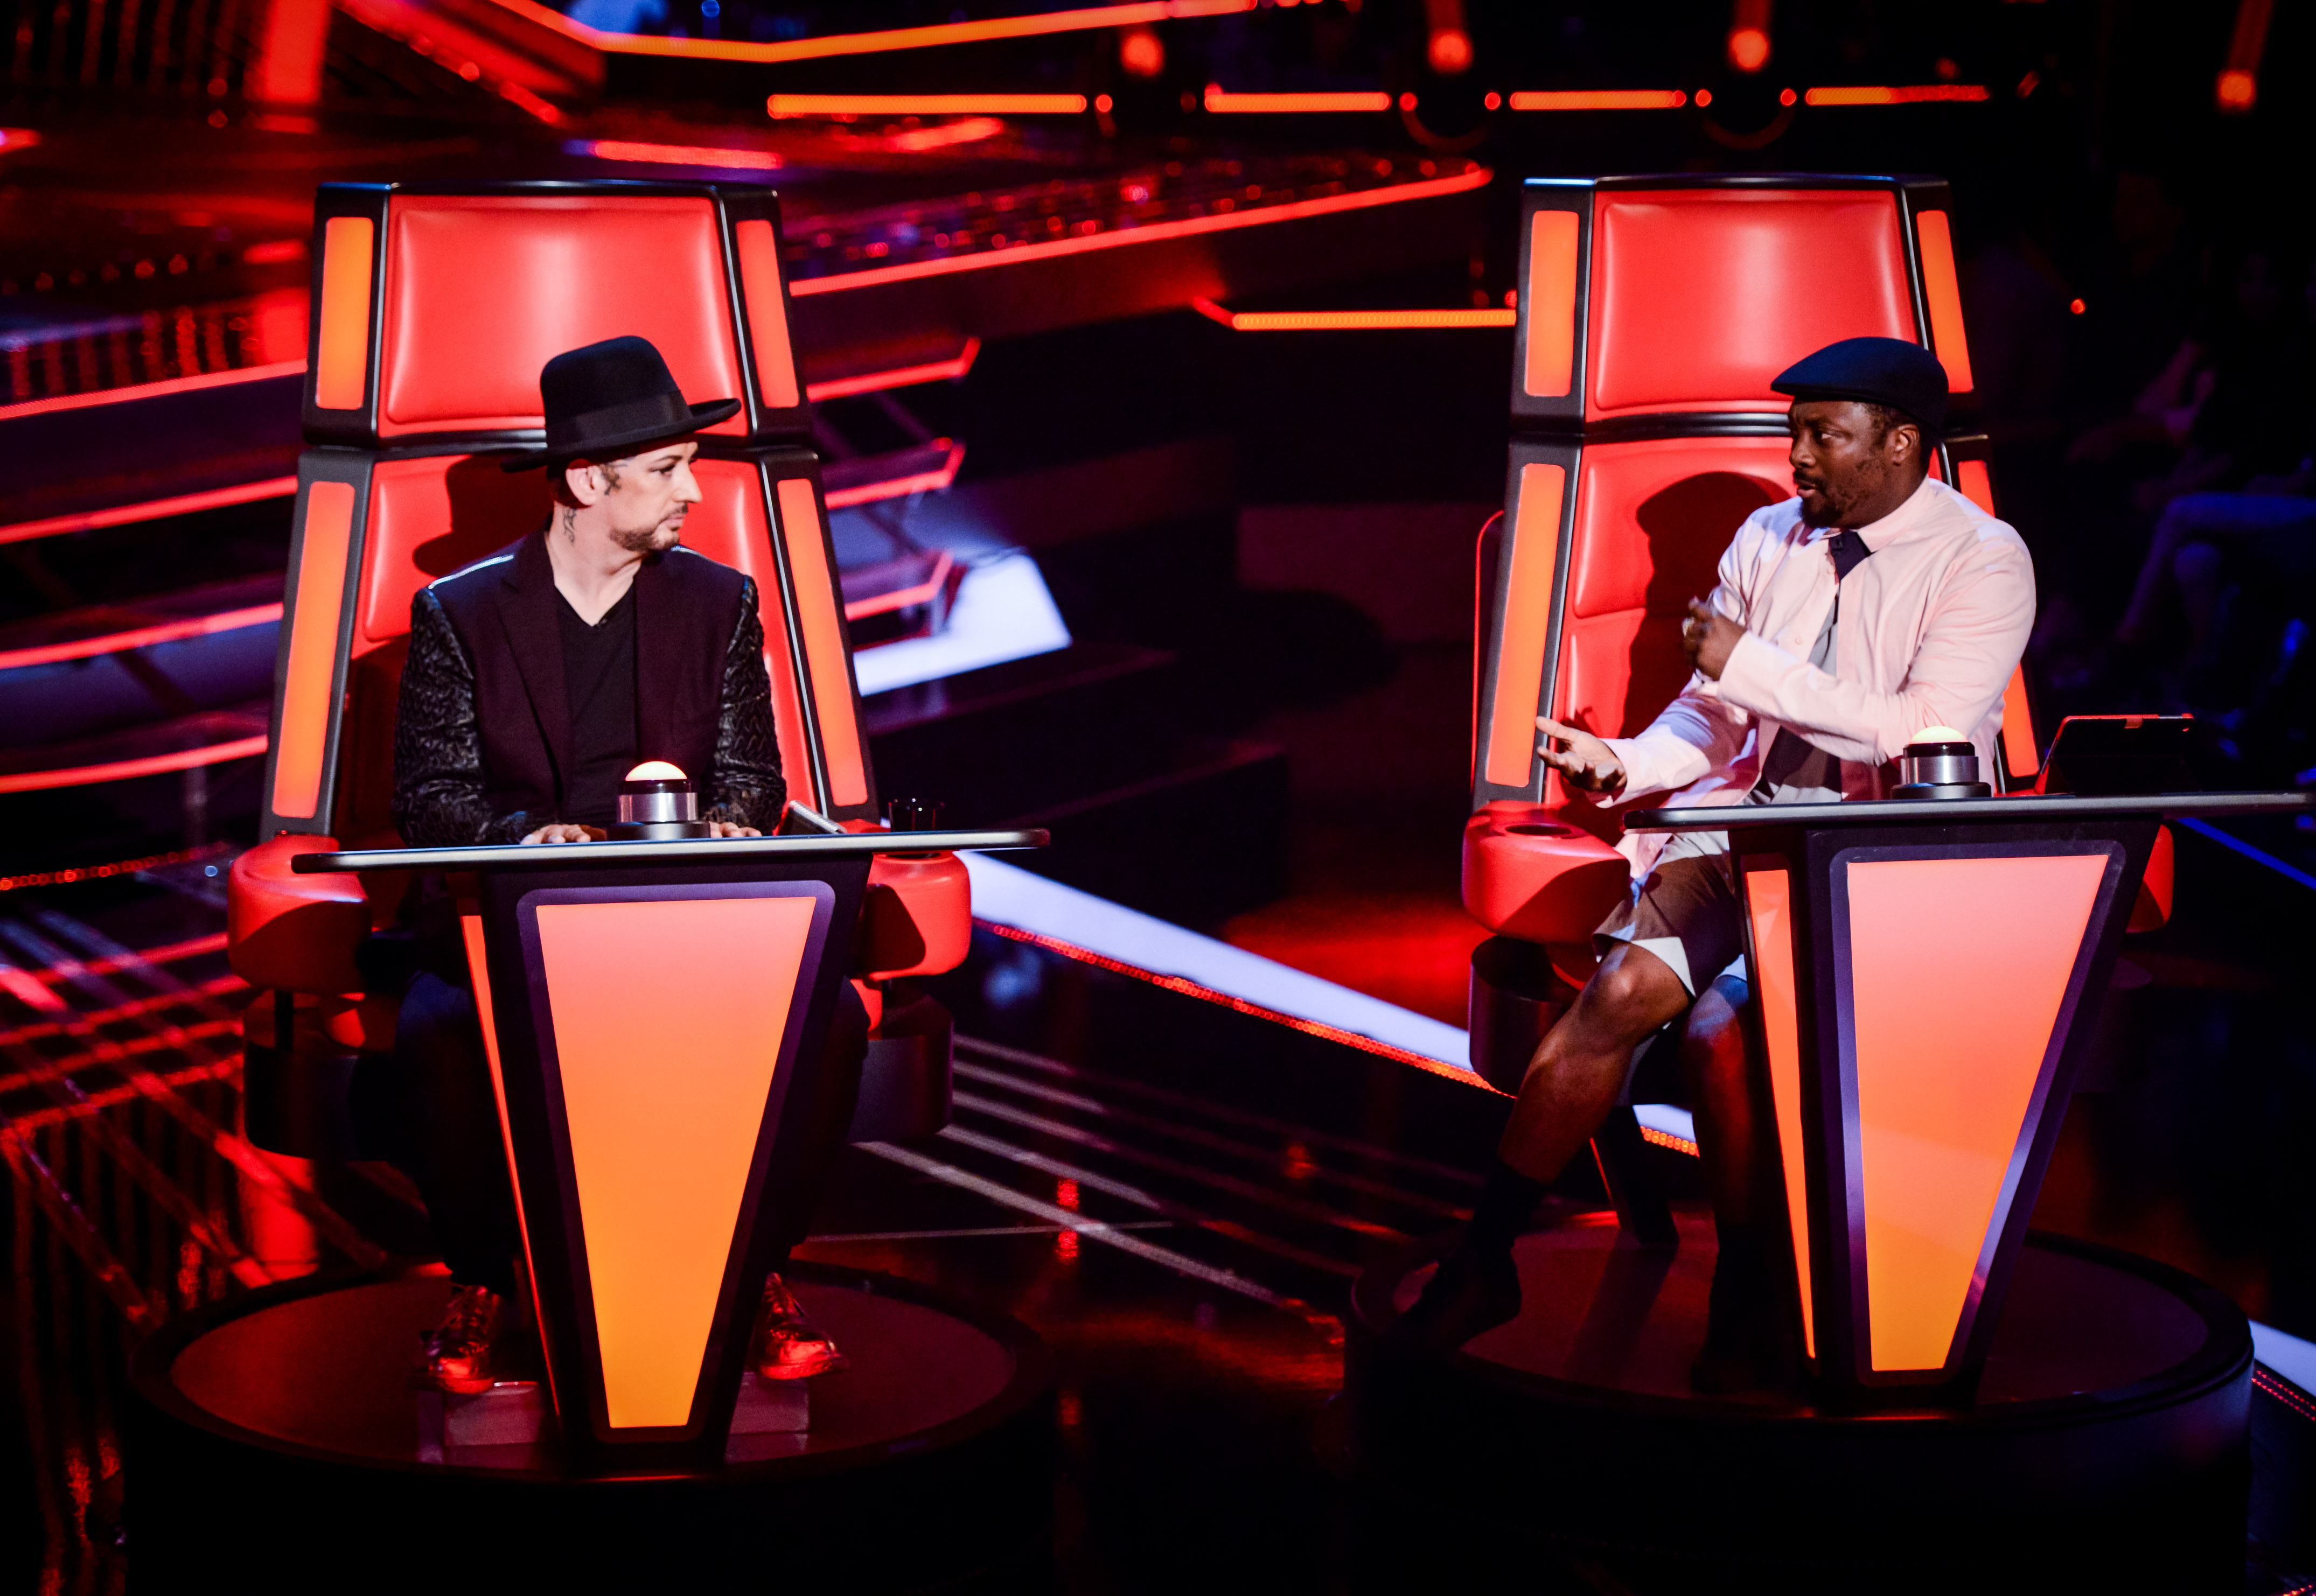 The Voice 2016: 15 things we noticed during the first blind auditions